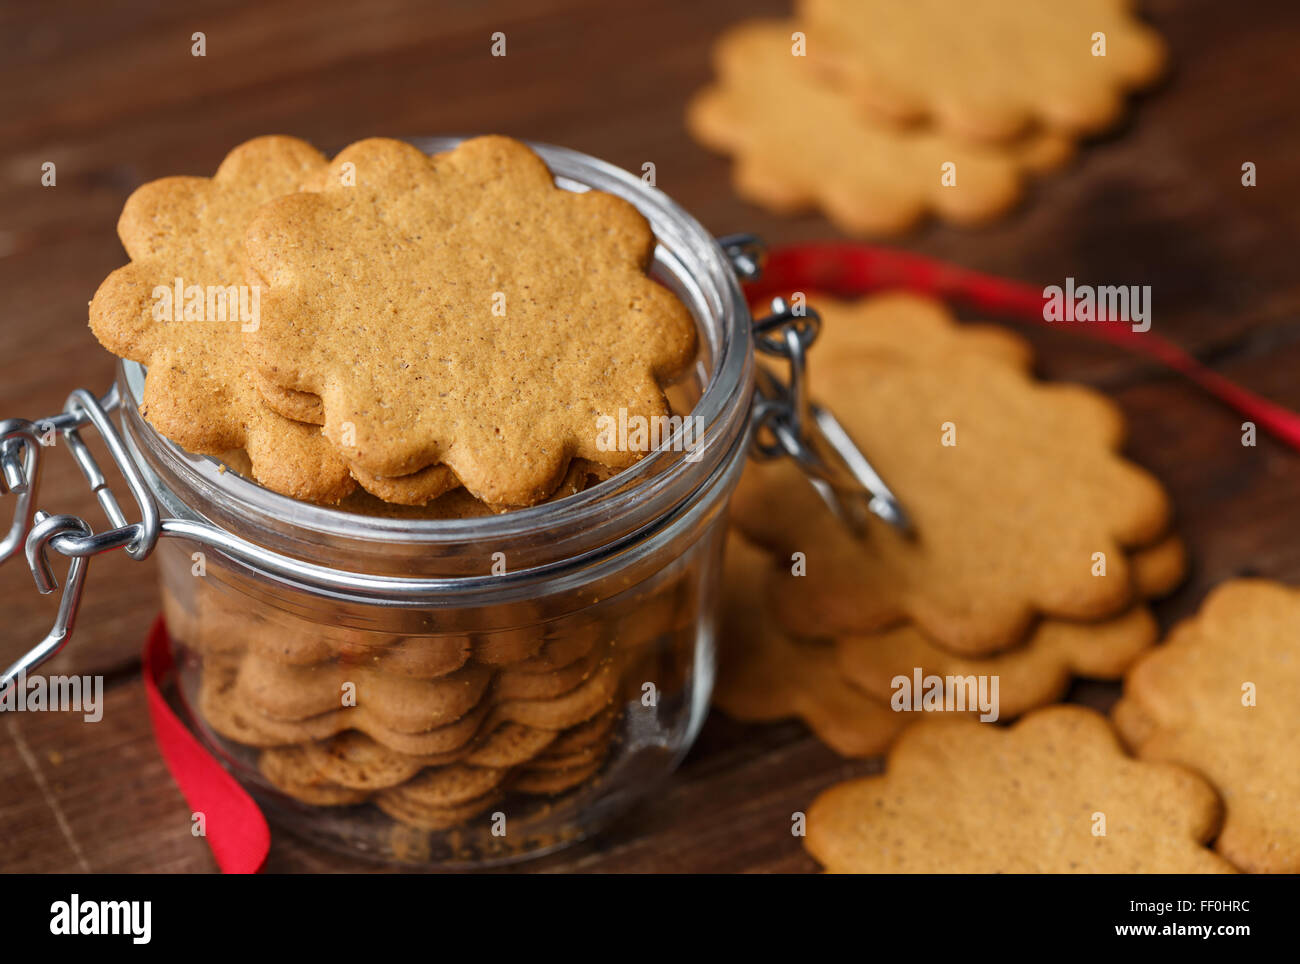 Pepparkakor (Swedish Ginger Cookies) in a glass jar - Stock Image